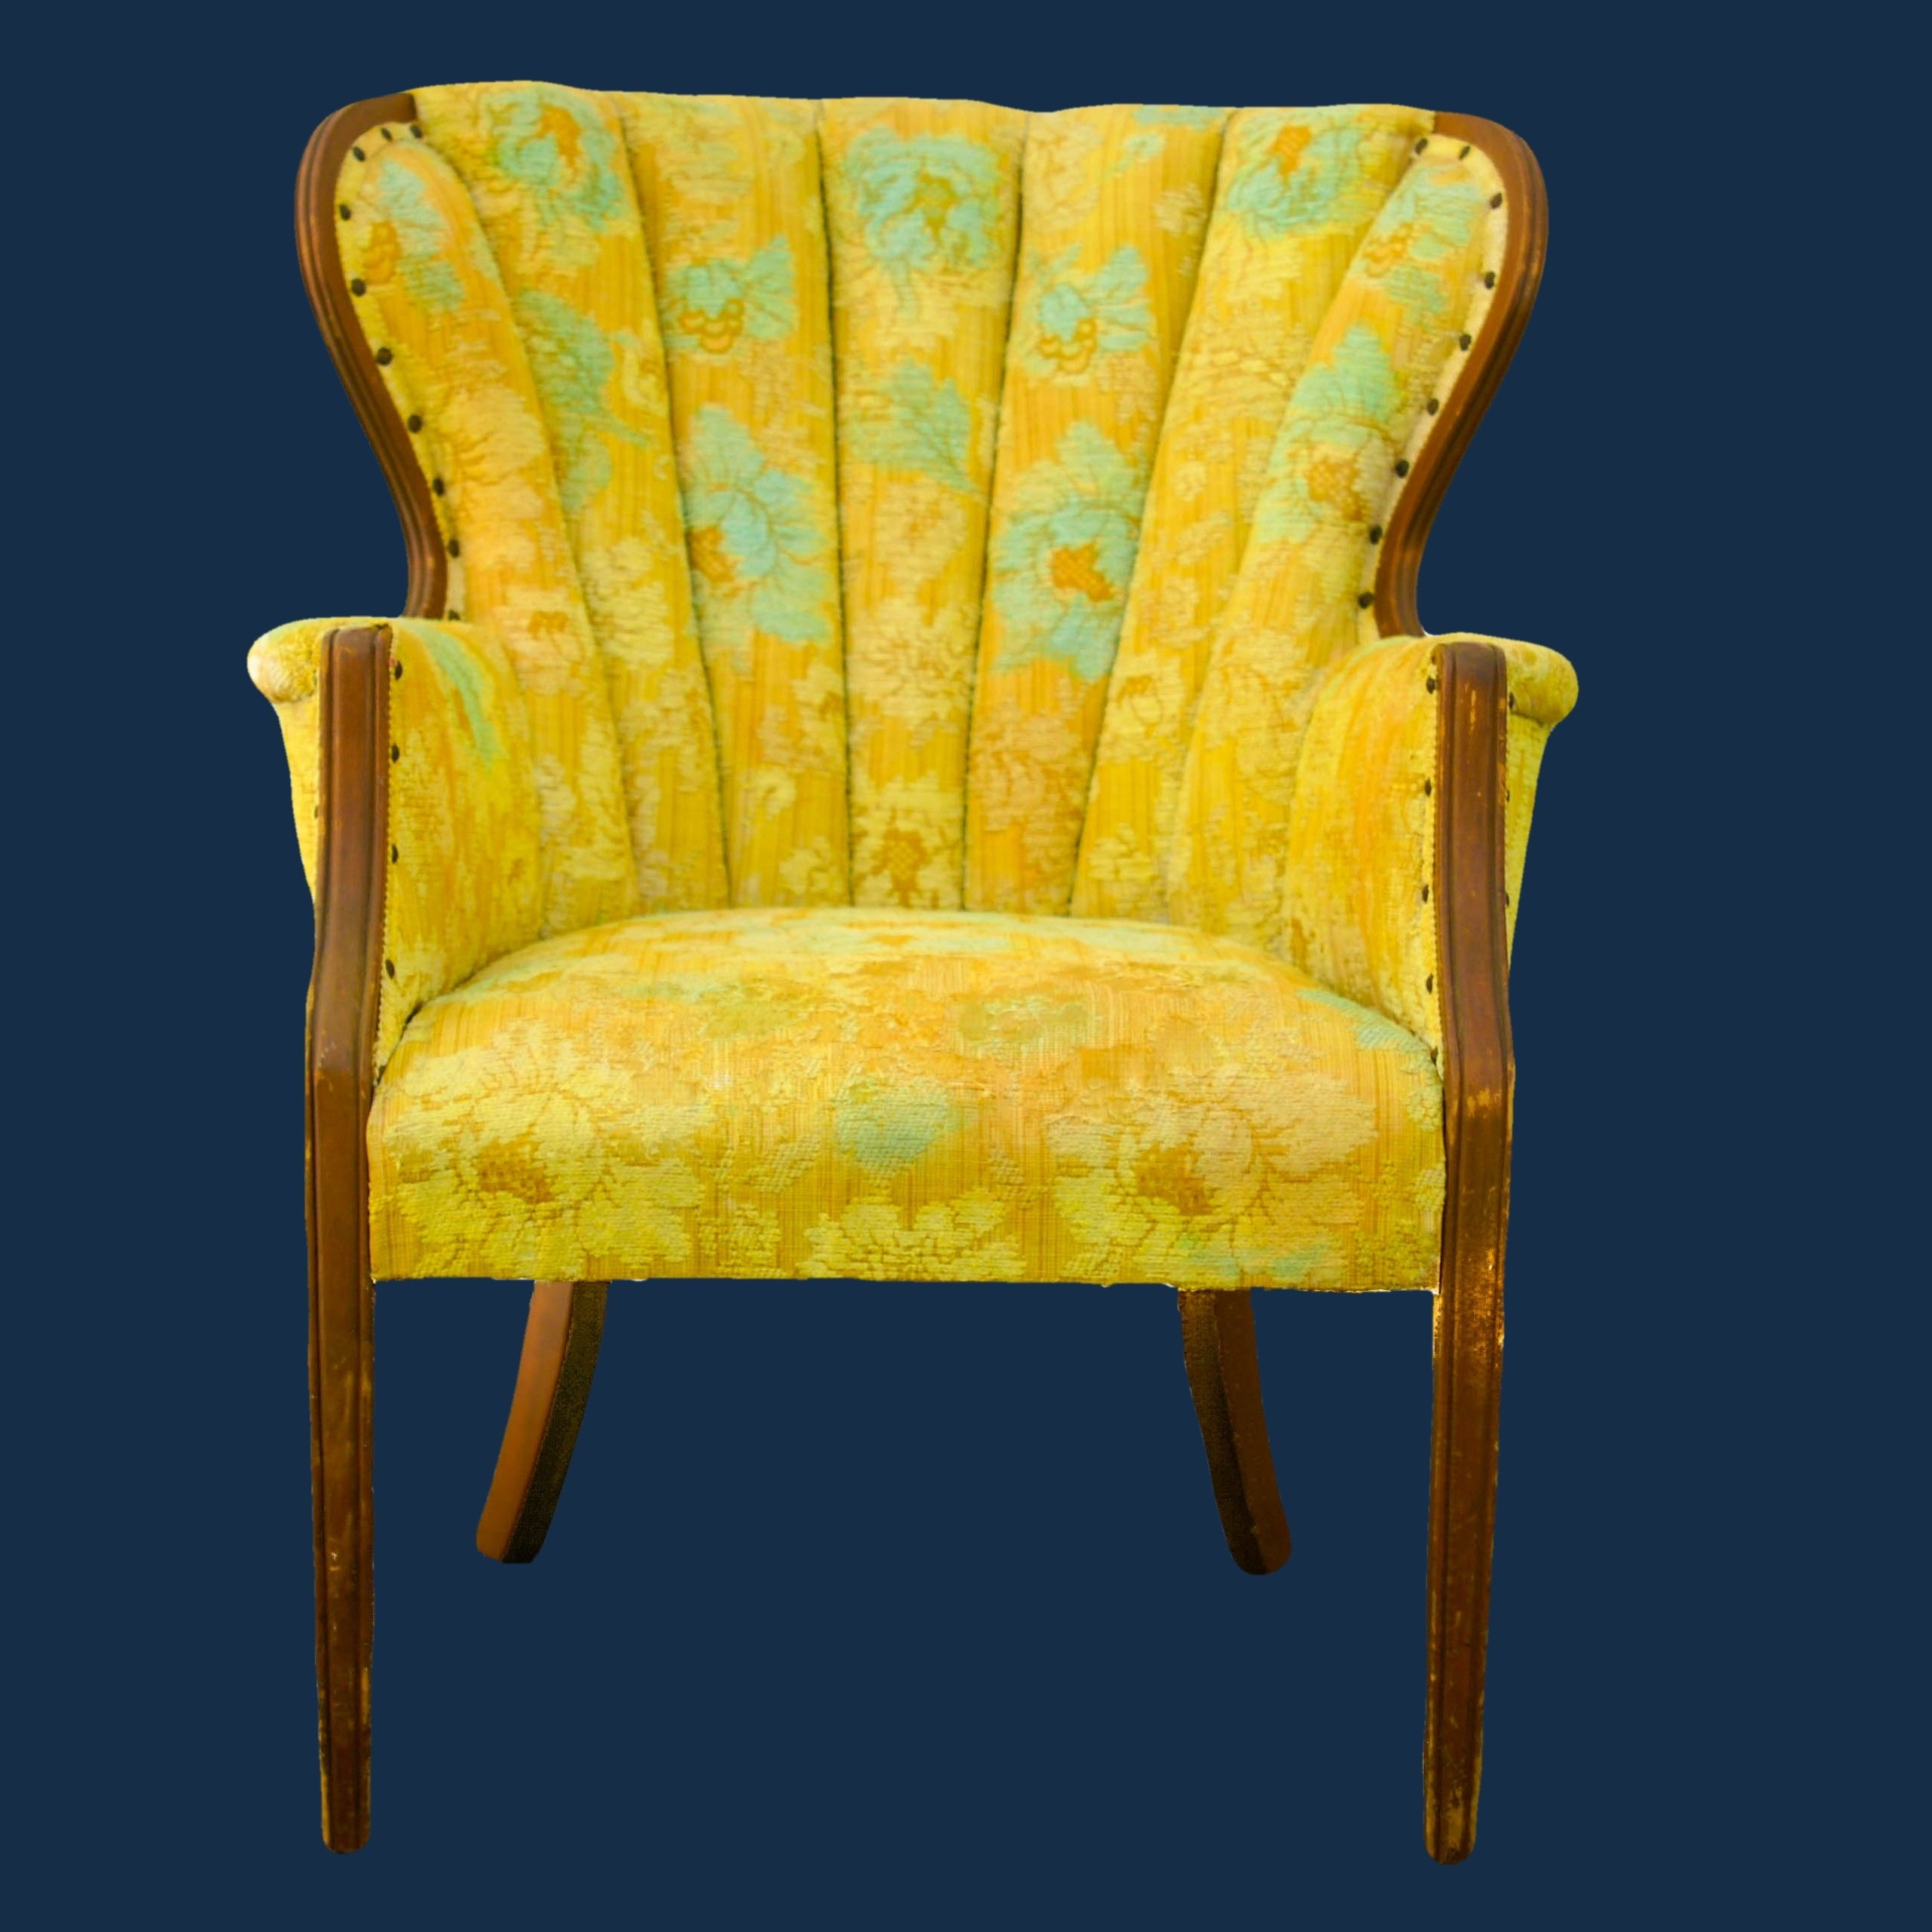 20% OFF -Overdyed Bright Yellow & Aqua Chair 00023E